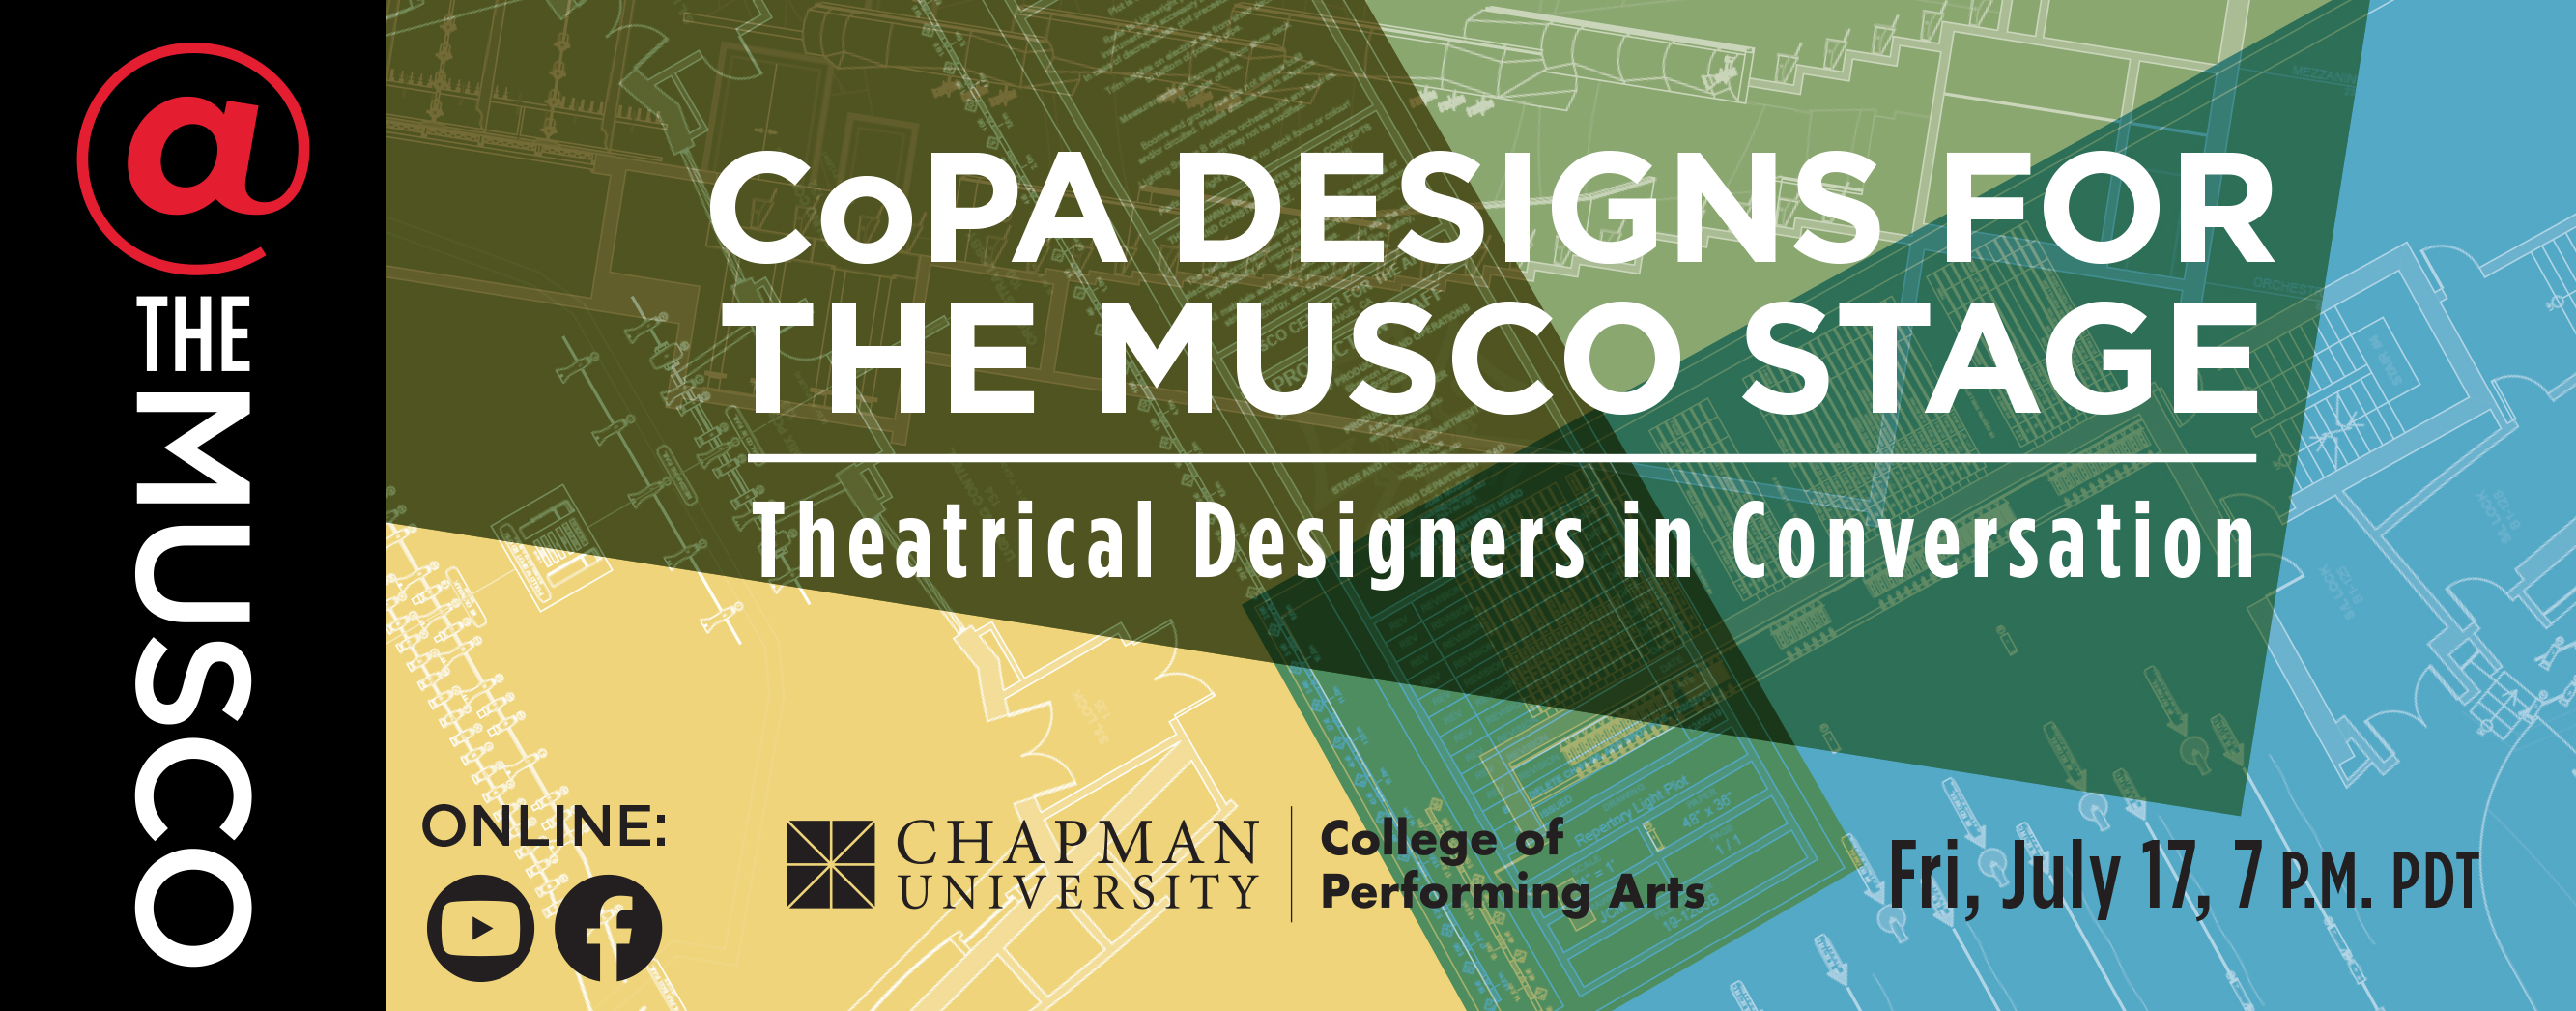 CoPA Designs for the Musco Stage - Online